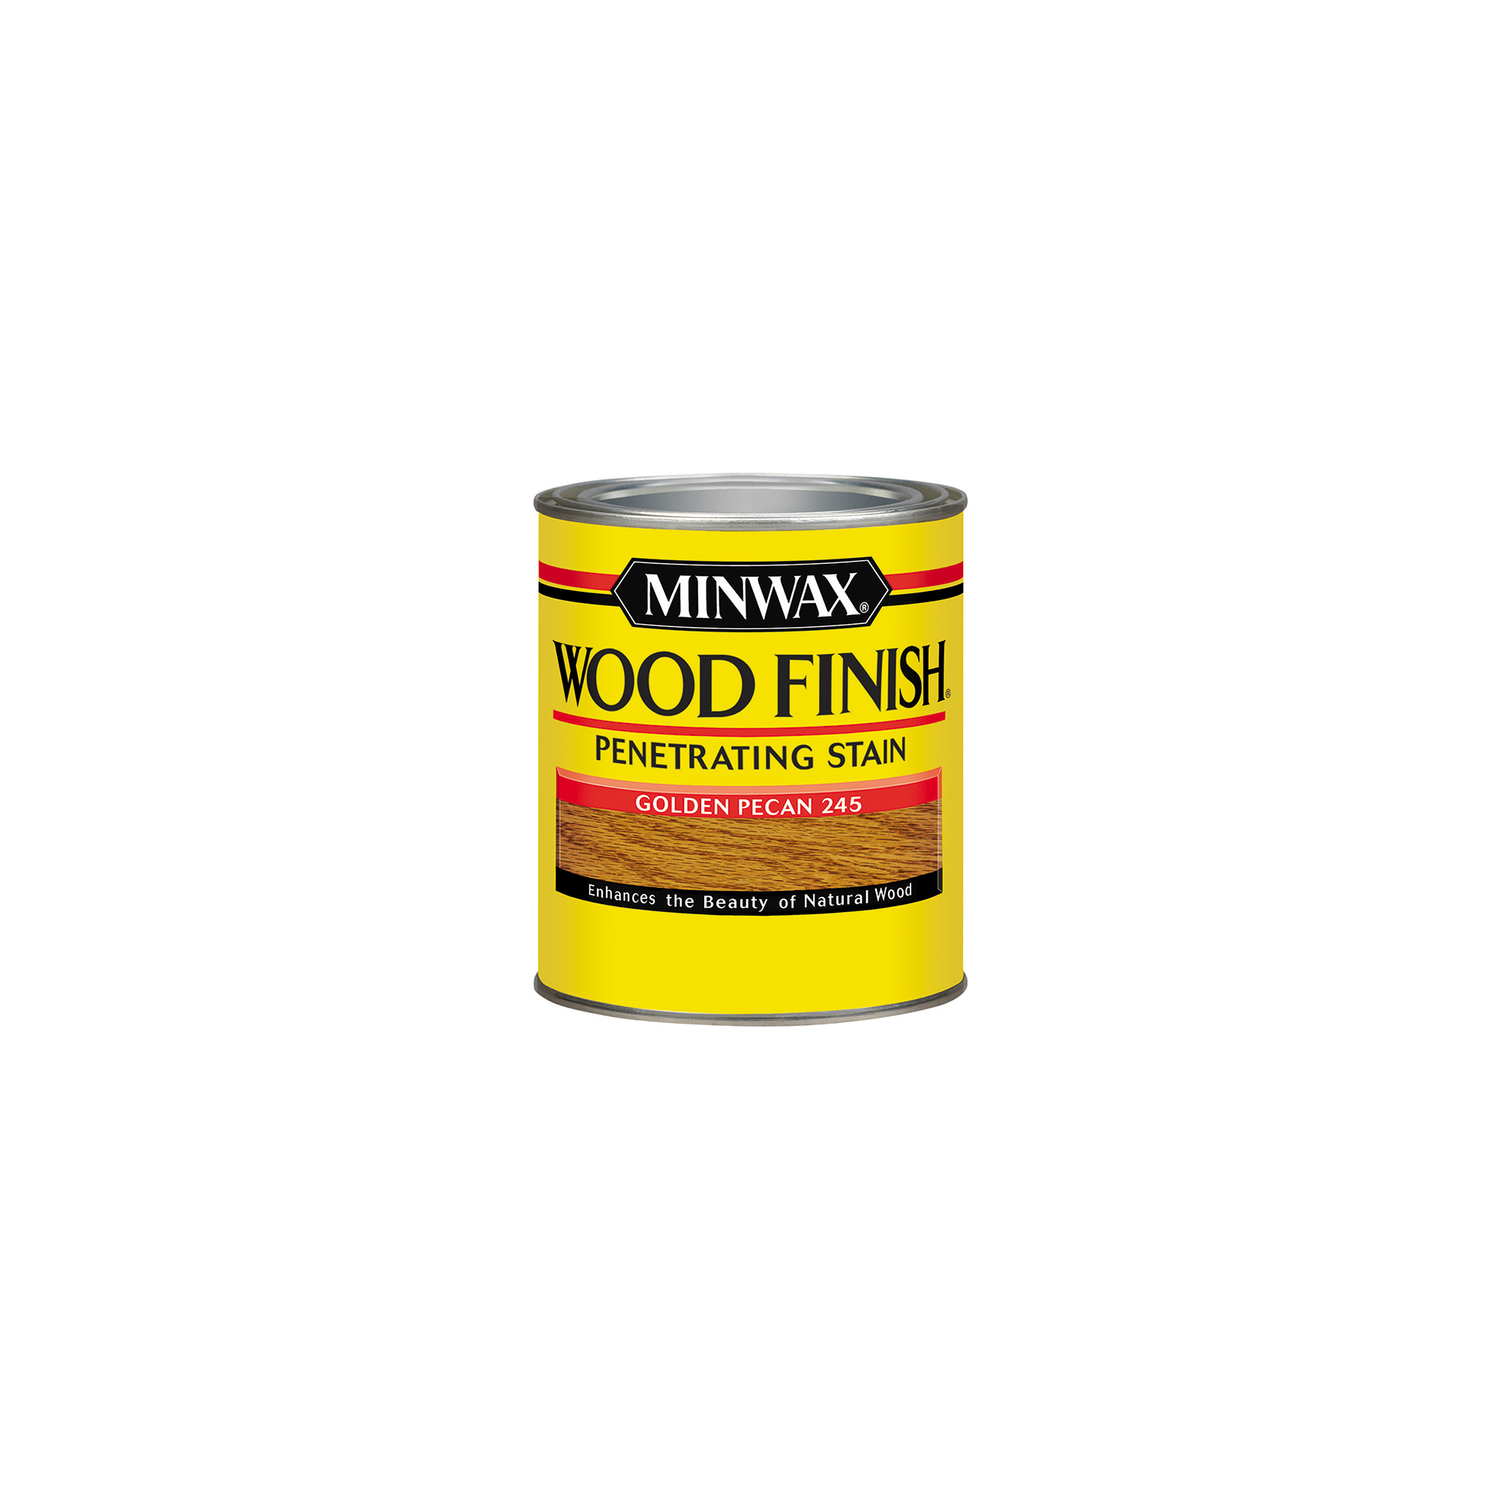 Minwax  Wood Finish  Semi-Transparent  Golden Pecan  Oil-Based  Wood Stain  1/2 pt.